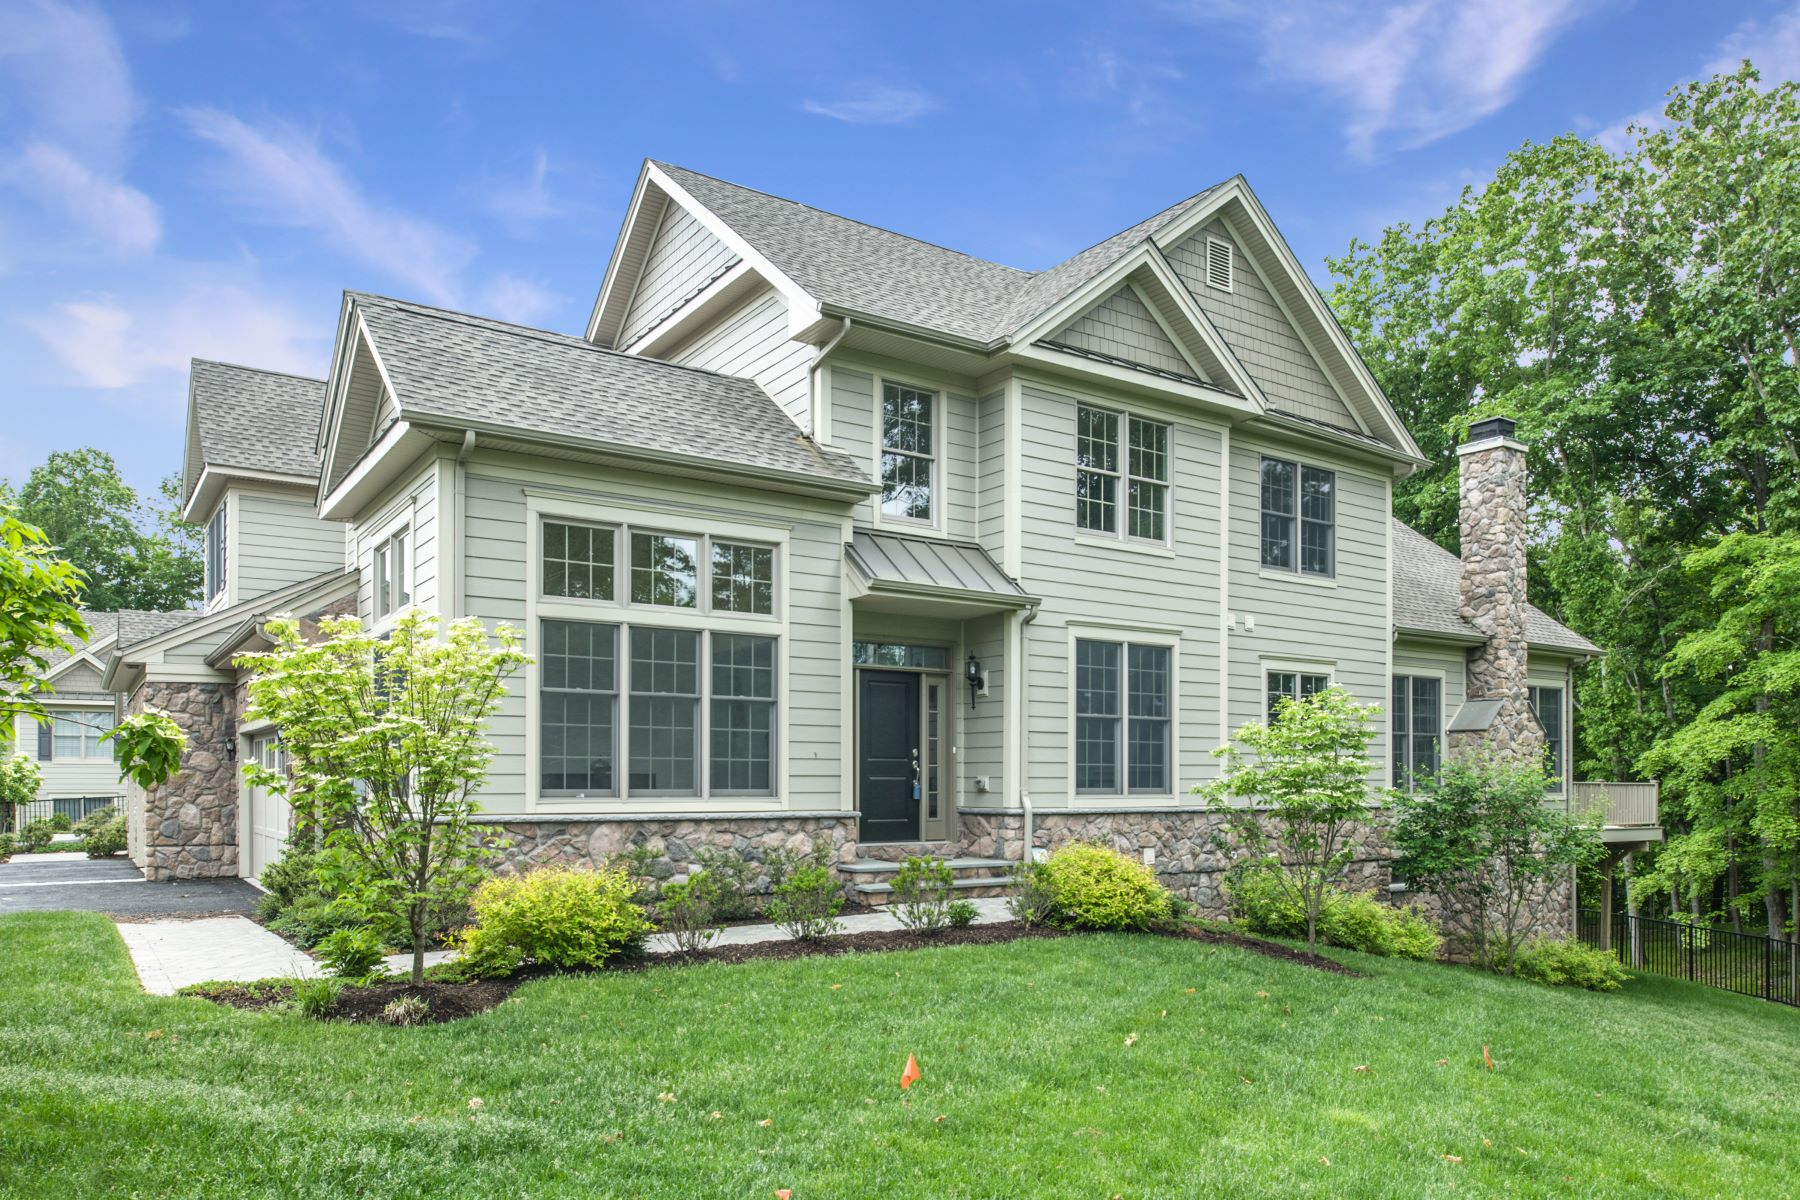 Single Family Homes for Active at Live the Valeria lifestyle 11 Hedges Court Cortlandt Manor, New York 10567 United States